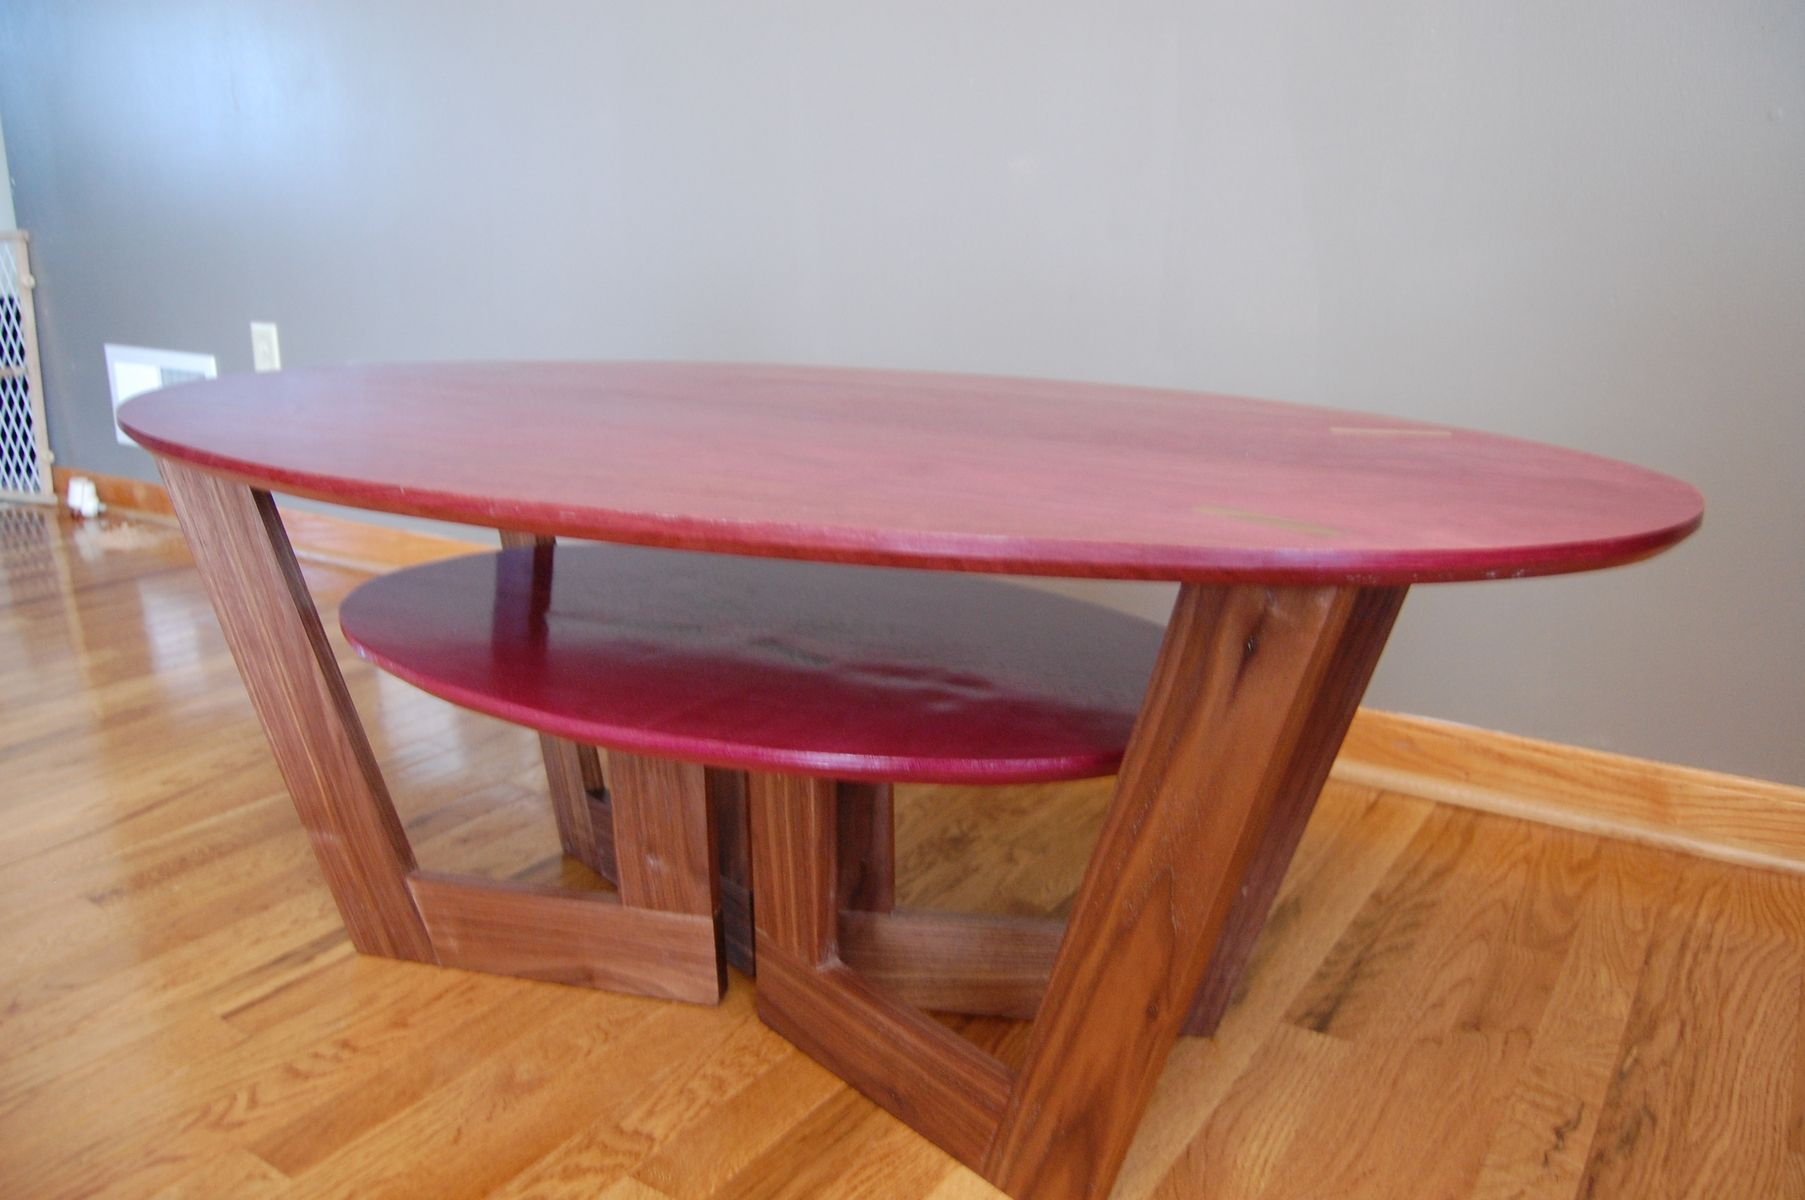 Custom Purpleheart Coffee Table by Clark Mcgill Furniture